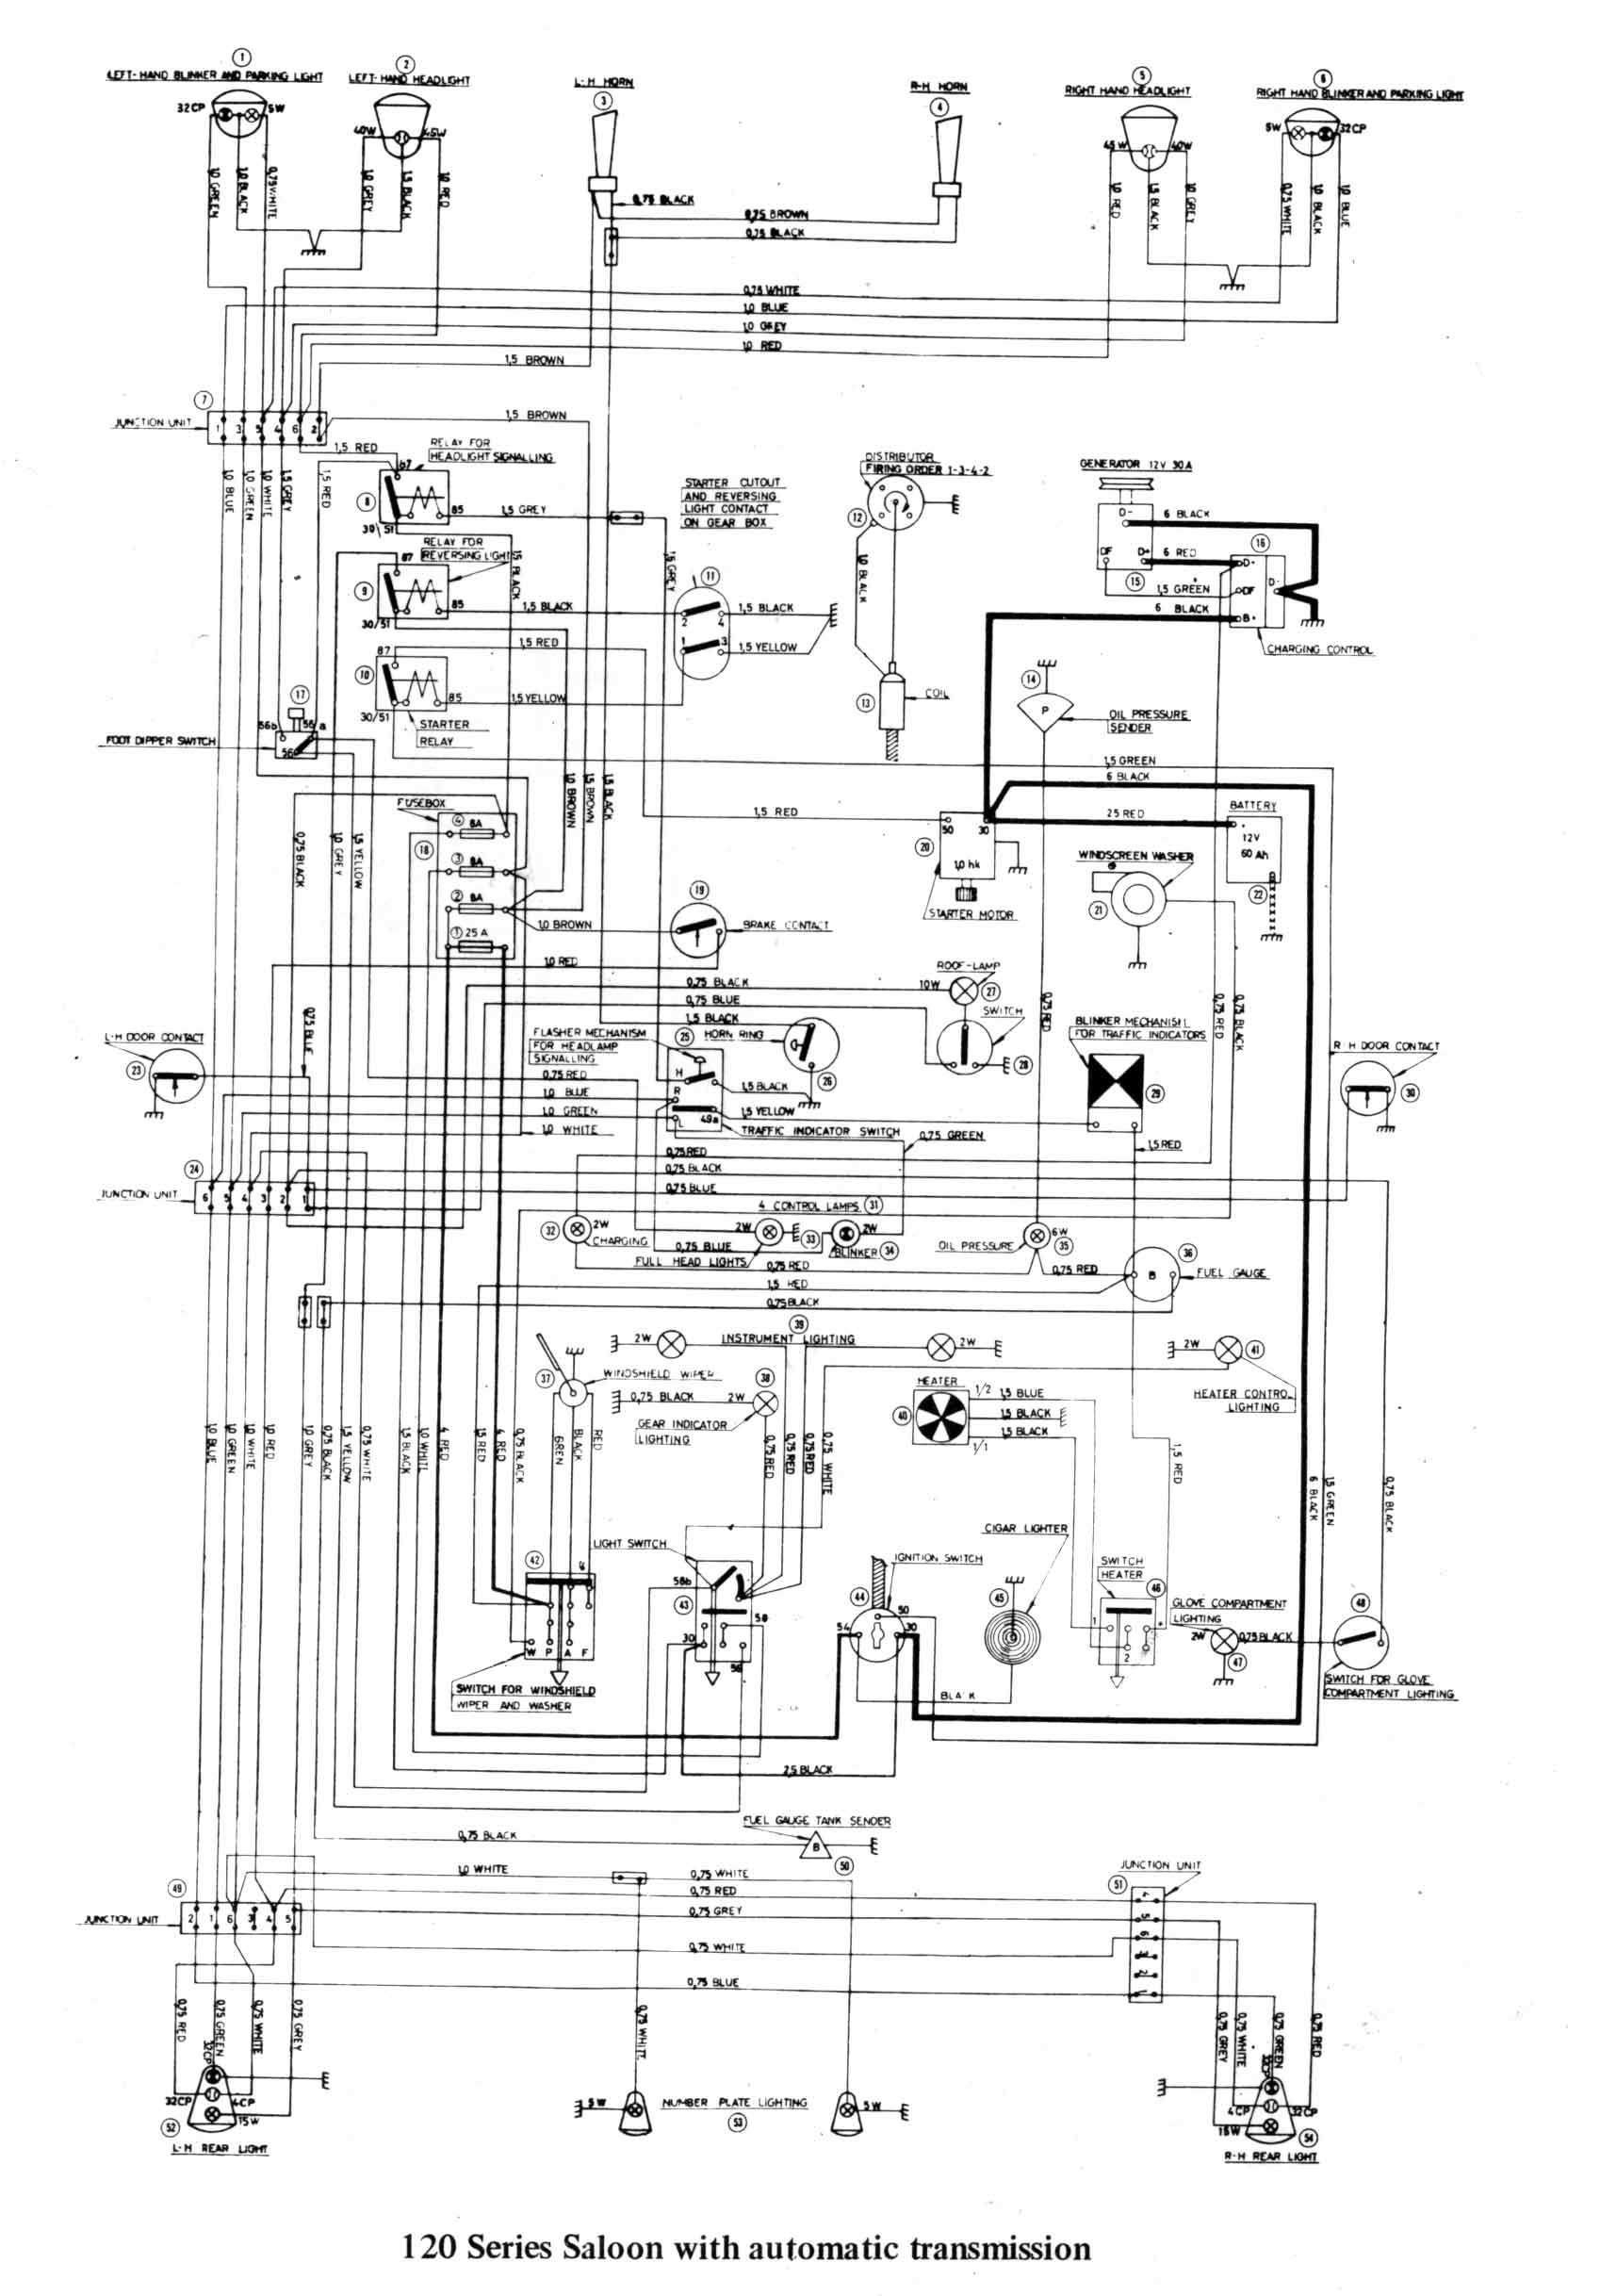 hid wiring diagram with relay Collection-Wiring Diagram For Hid Relay New Relay Wire Diagram New Sw Em Od Retrofitting A Vintage Volvo 7-g